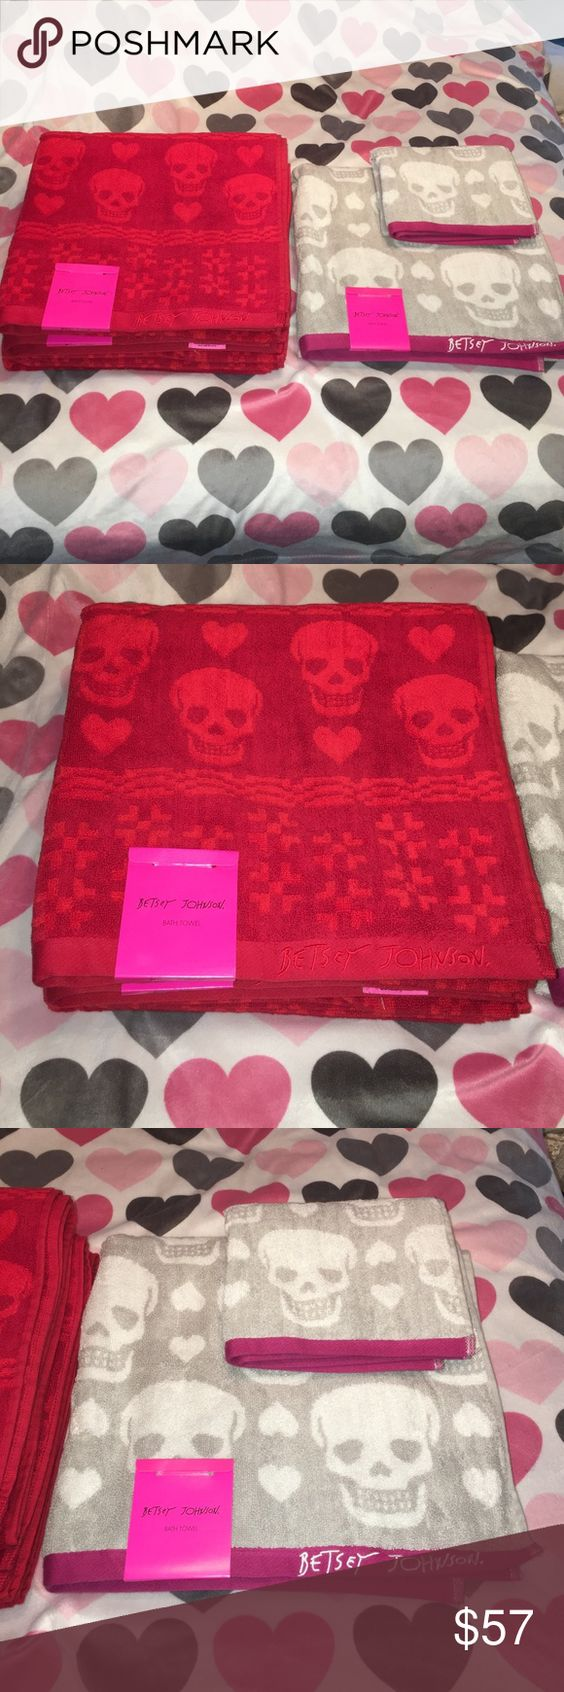 Betsey Johnson towel bundle NWT. This listing is for 3 red skull/heart towels, 1 skull/heart gray hand towel, and 1 skull/heart gray bath towel. I do have 1 hand, and bath towel in the gray but they have been used once if you wanted to add to this listing. Betsey Johnson Other